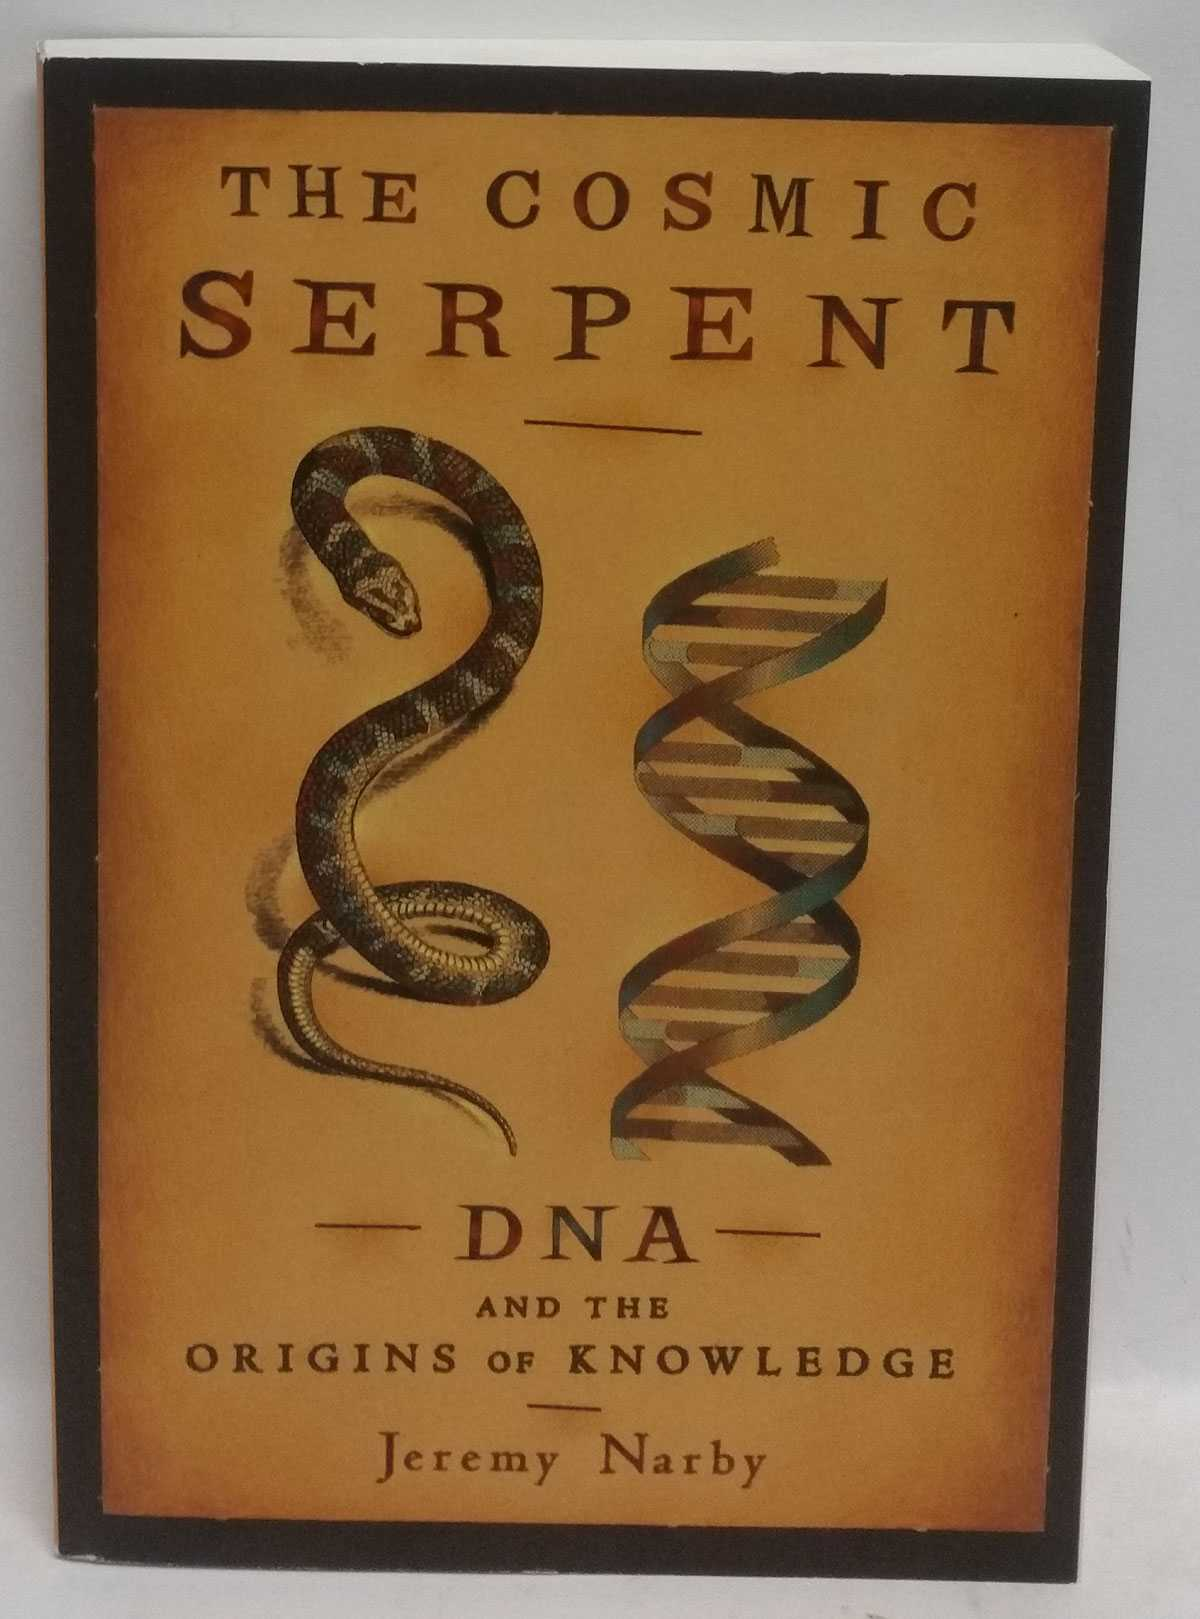 The Cosmic Serpent: DNA and the Origins of Knowledge, Jeremy Narby